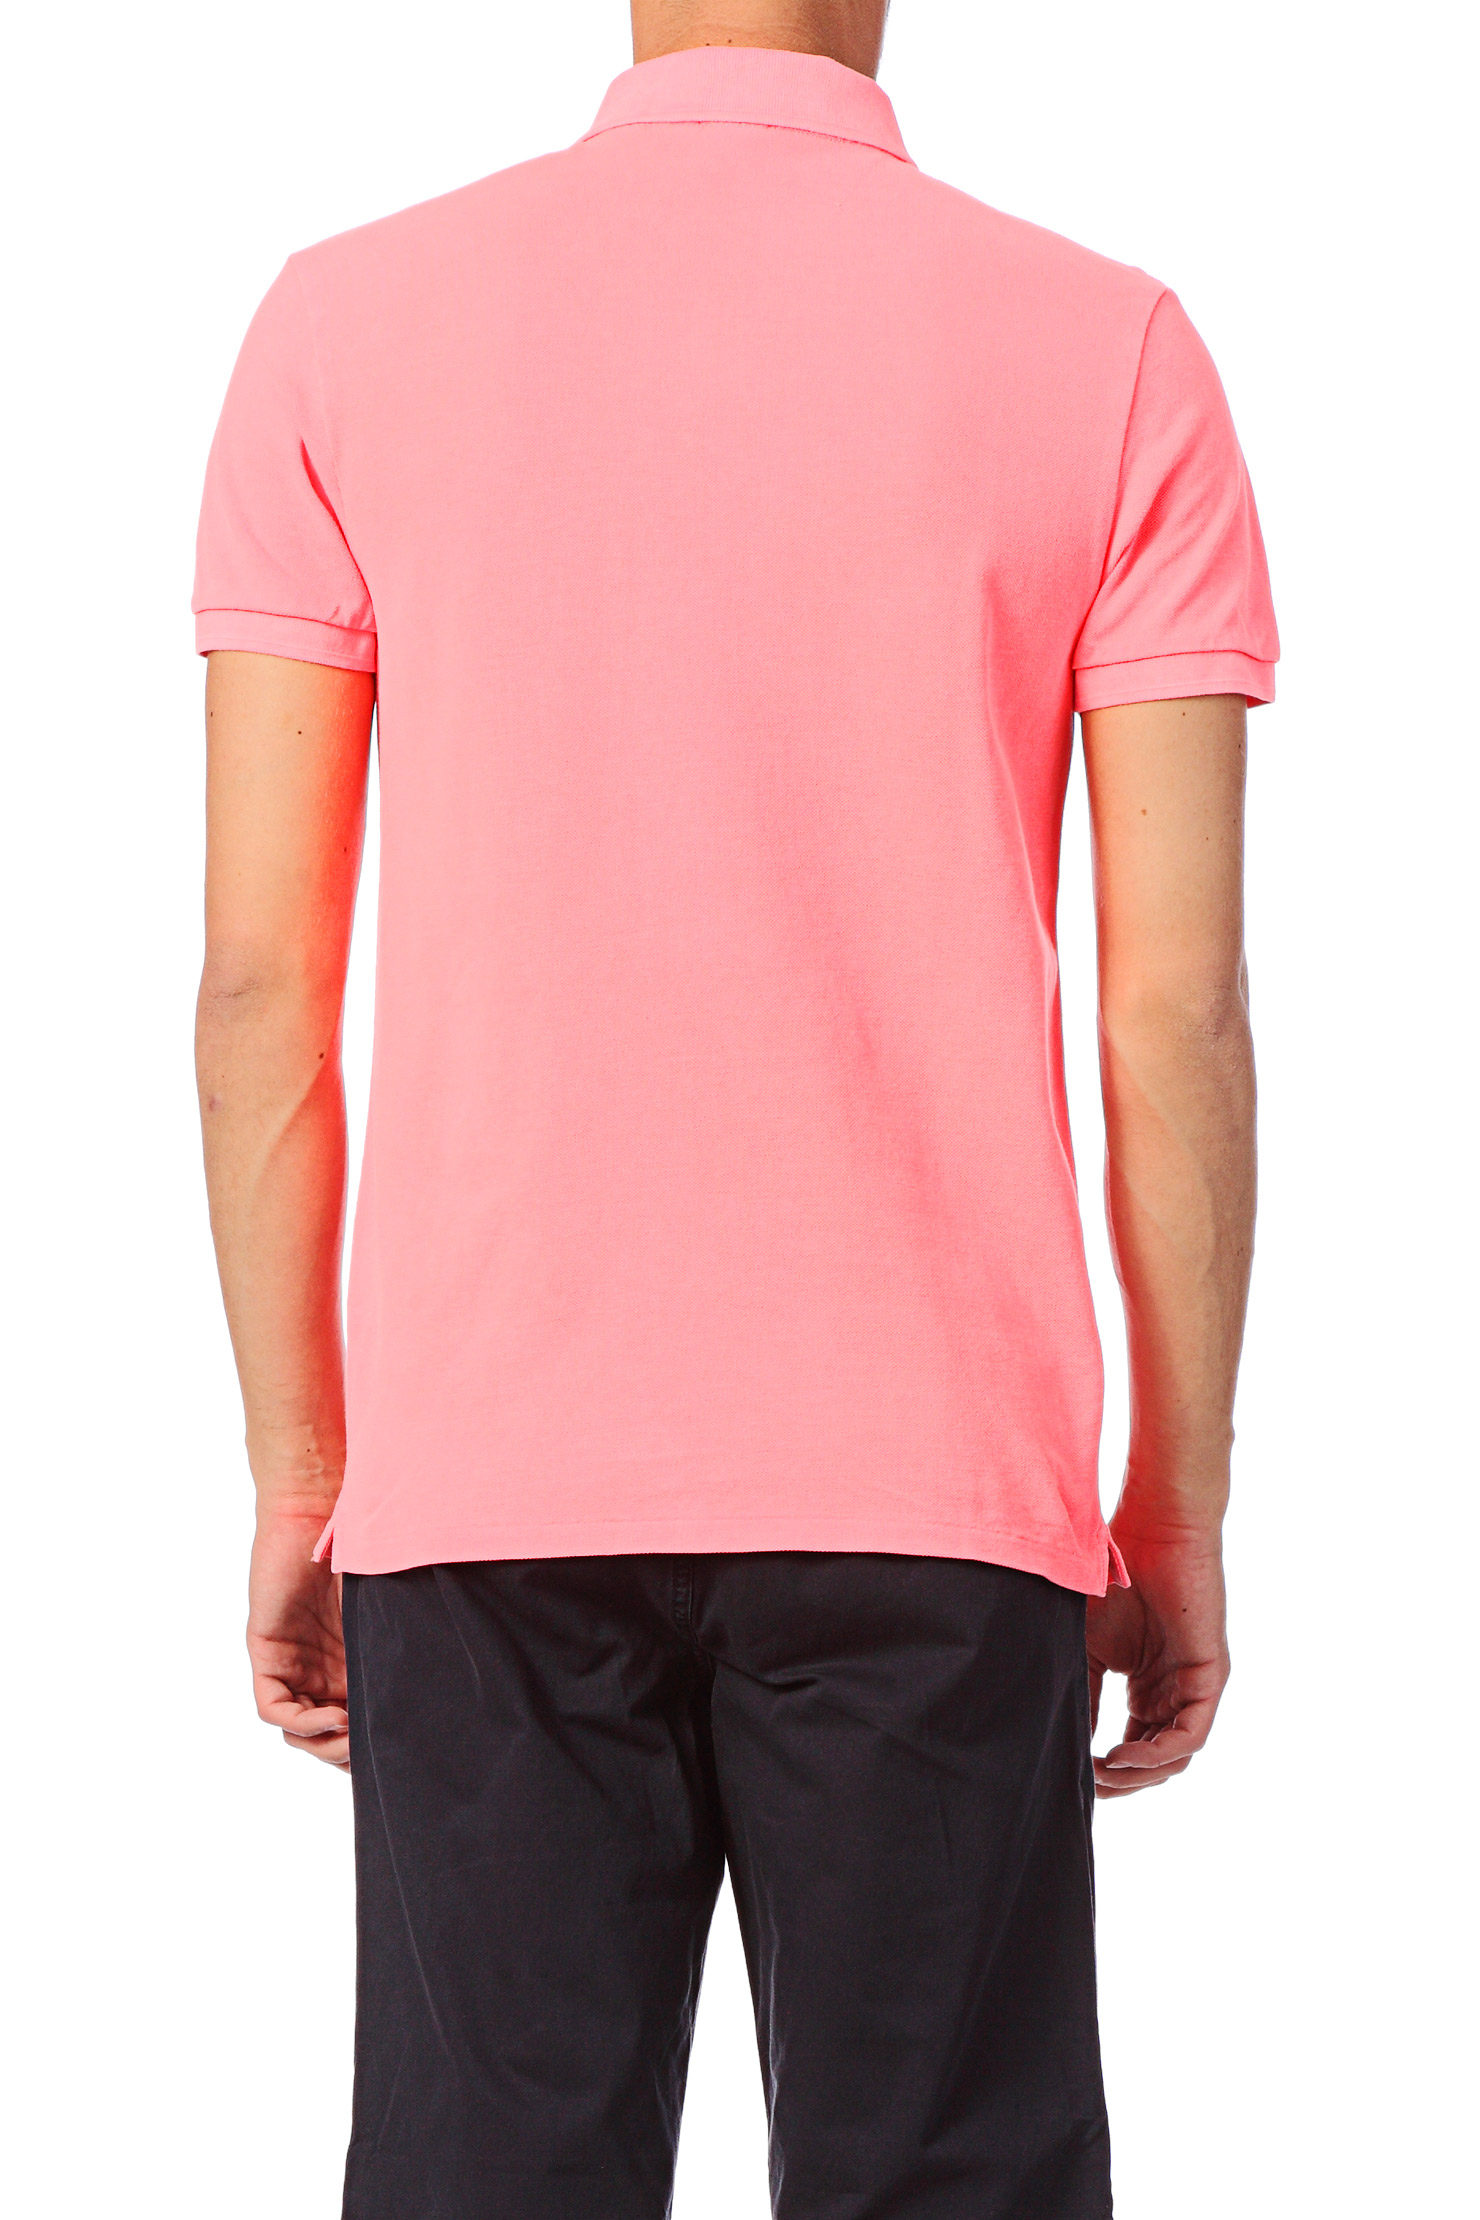 scotch soda polo shirt in pink for men lyst. Black Bedroom Furniture Sets. Home Design Ideas